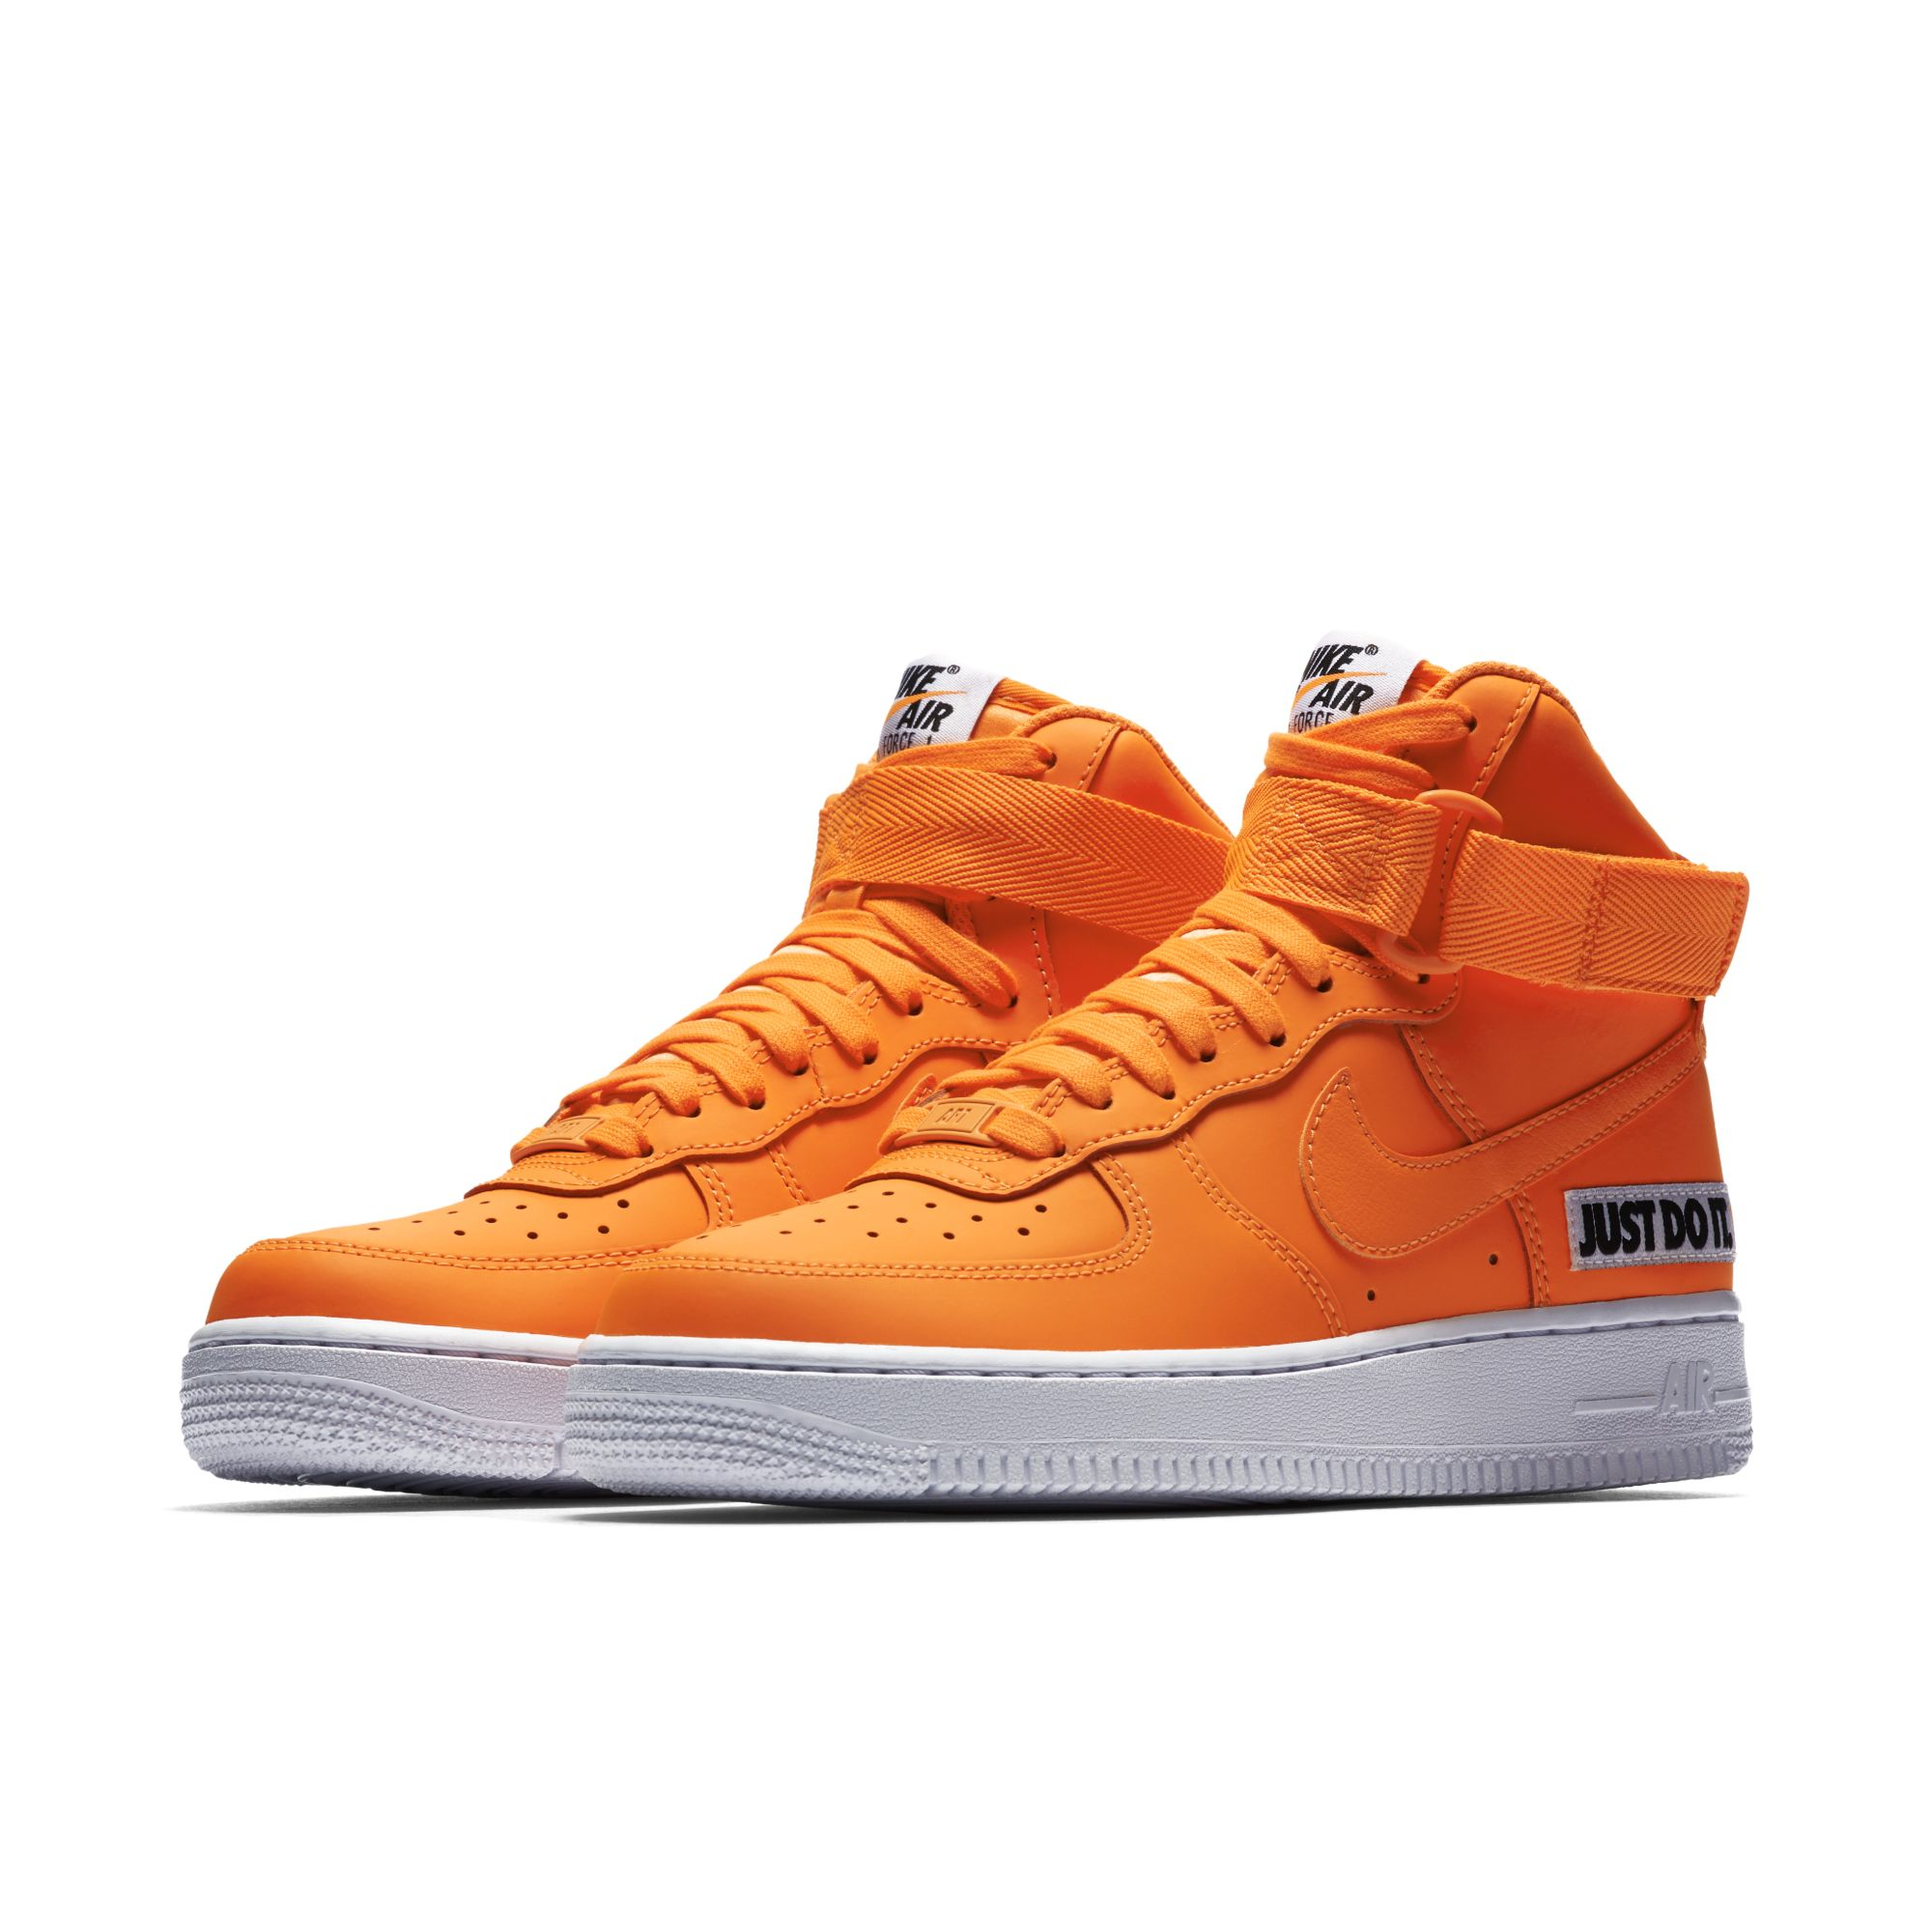 Nike Wmns Air Force 1 Hi LX Leather Total Orange/ Total Orange m3b7jut